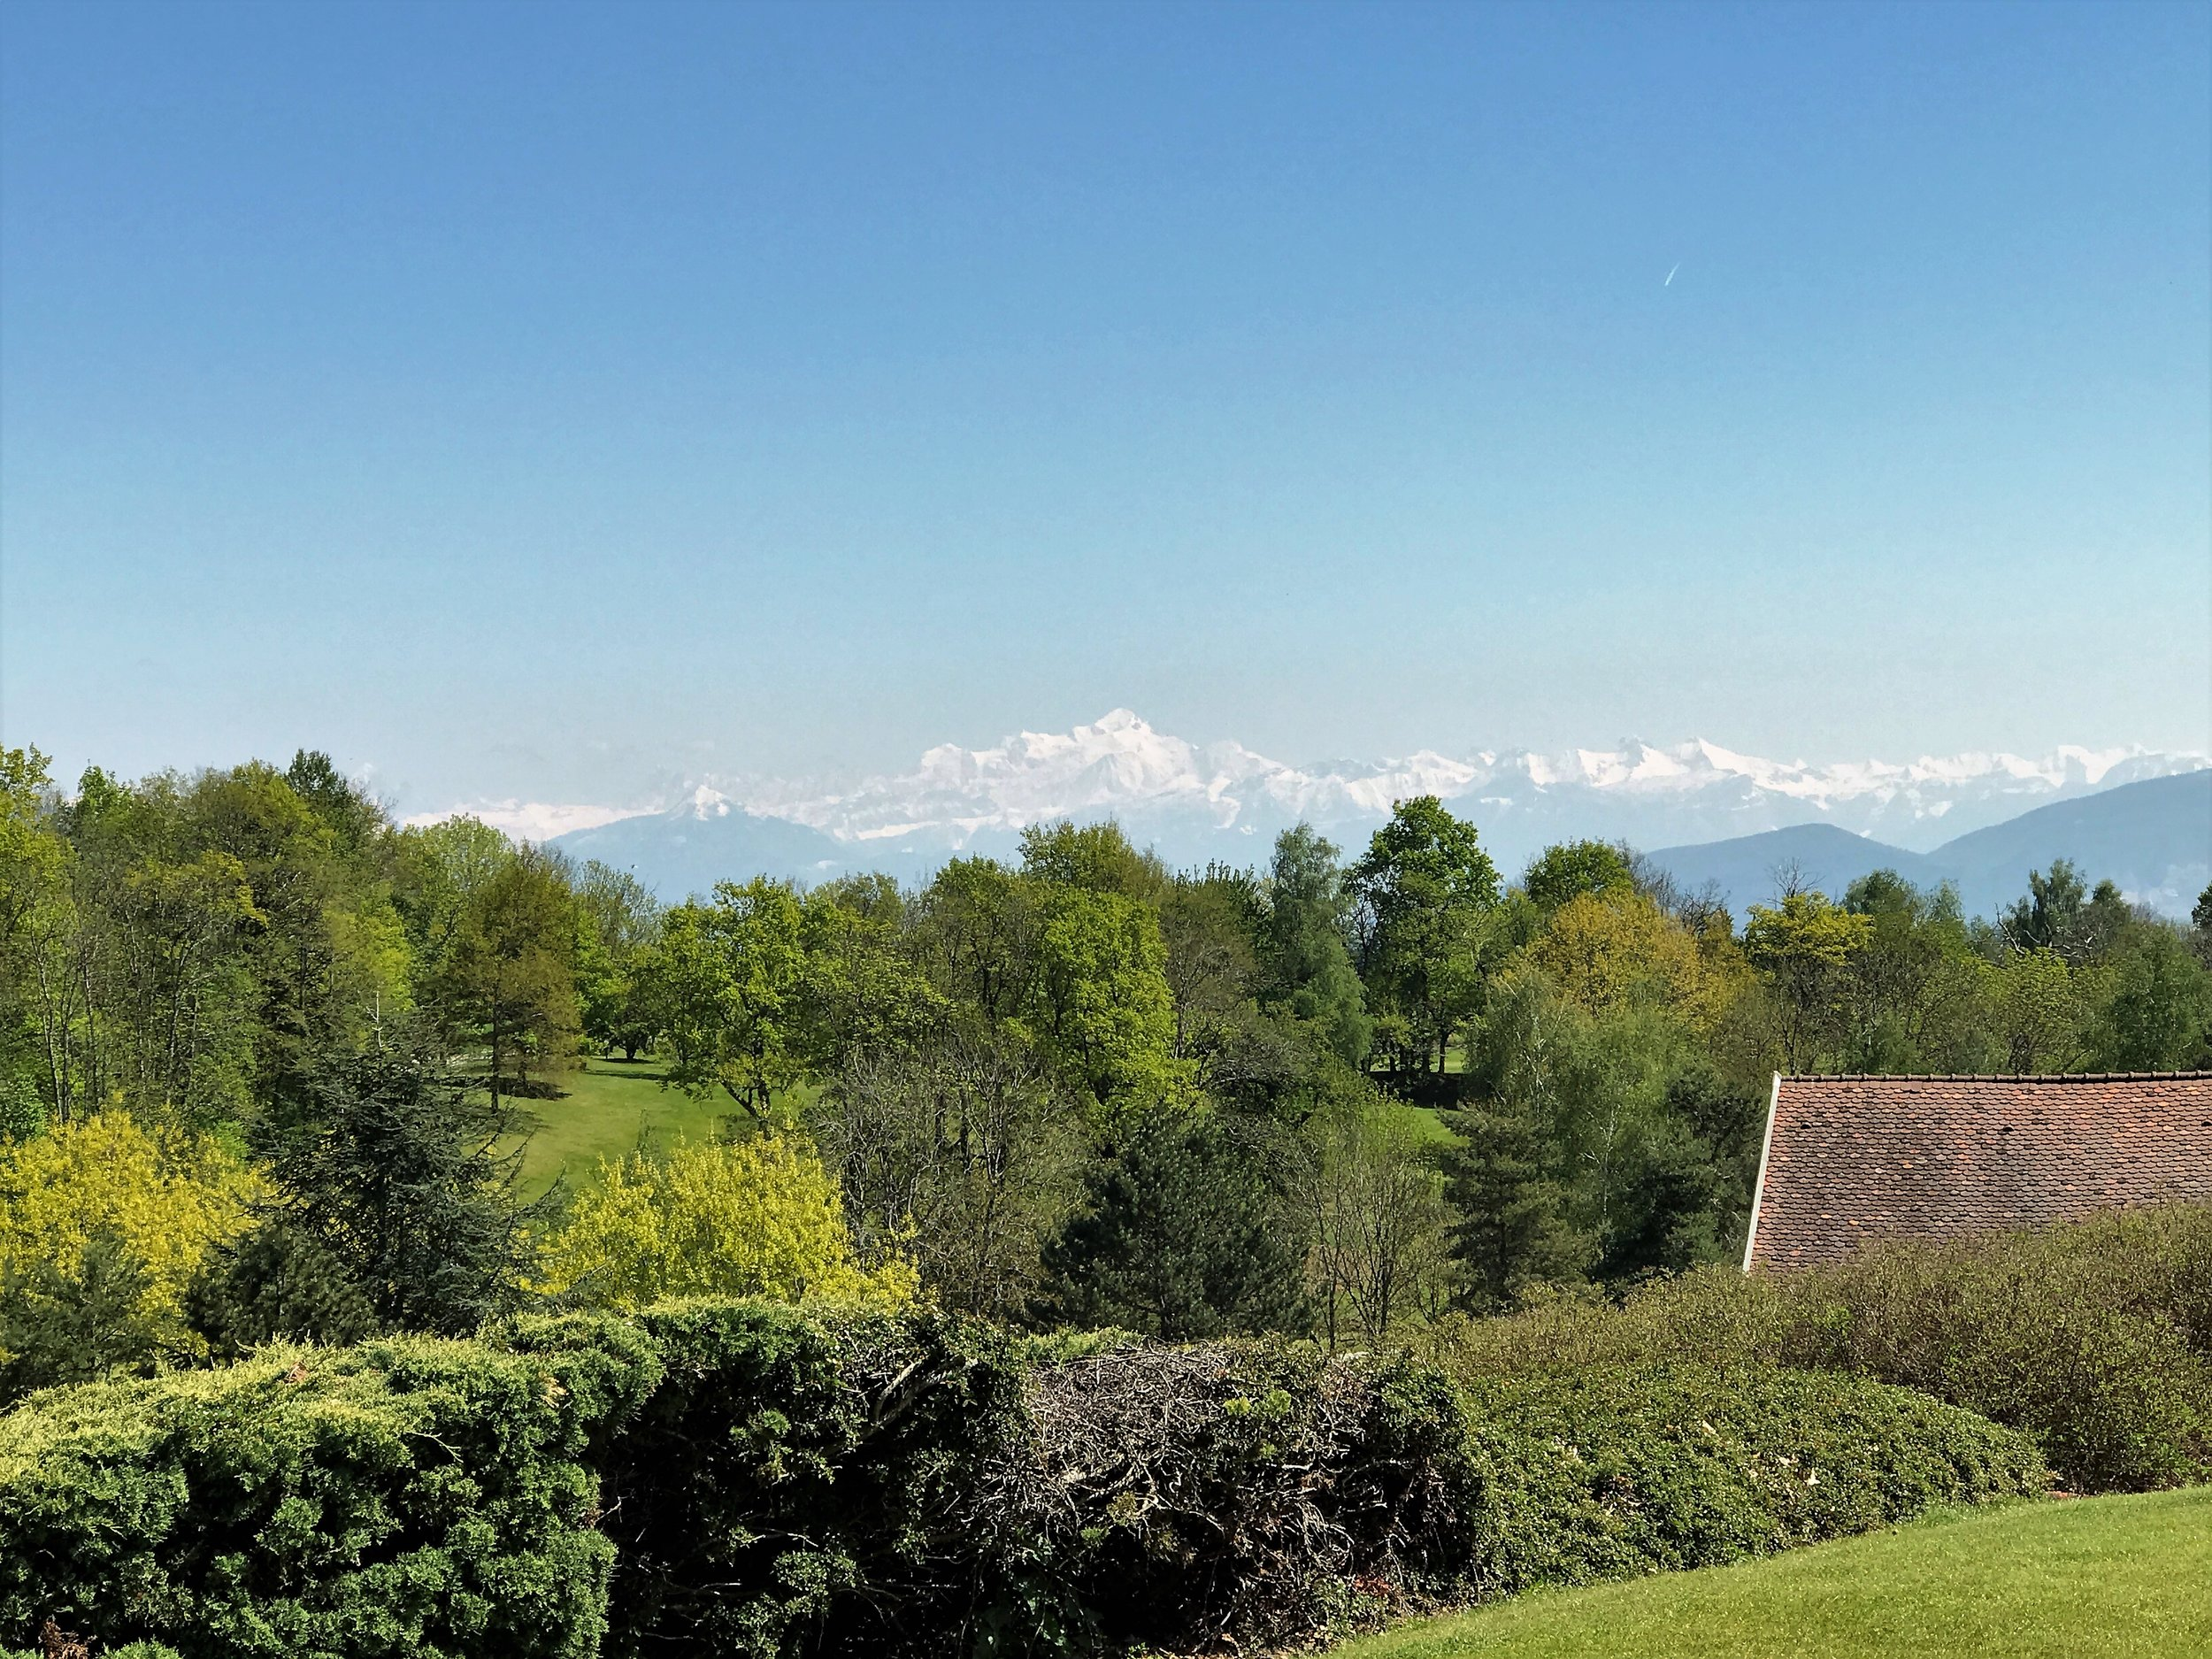 There's a spectacular view from the terrace at Maison Blanche over to the Mont Blanc